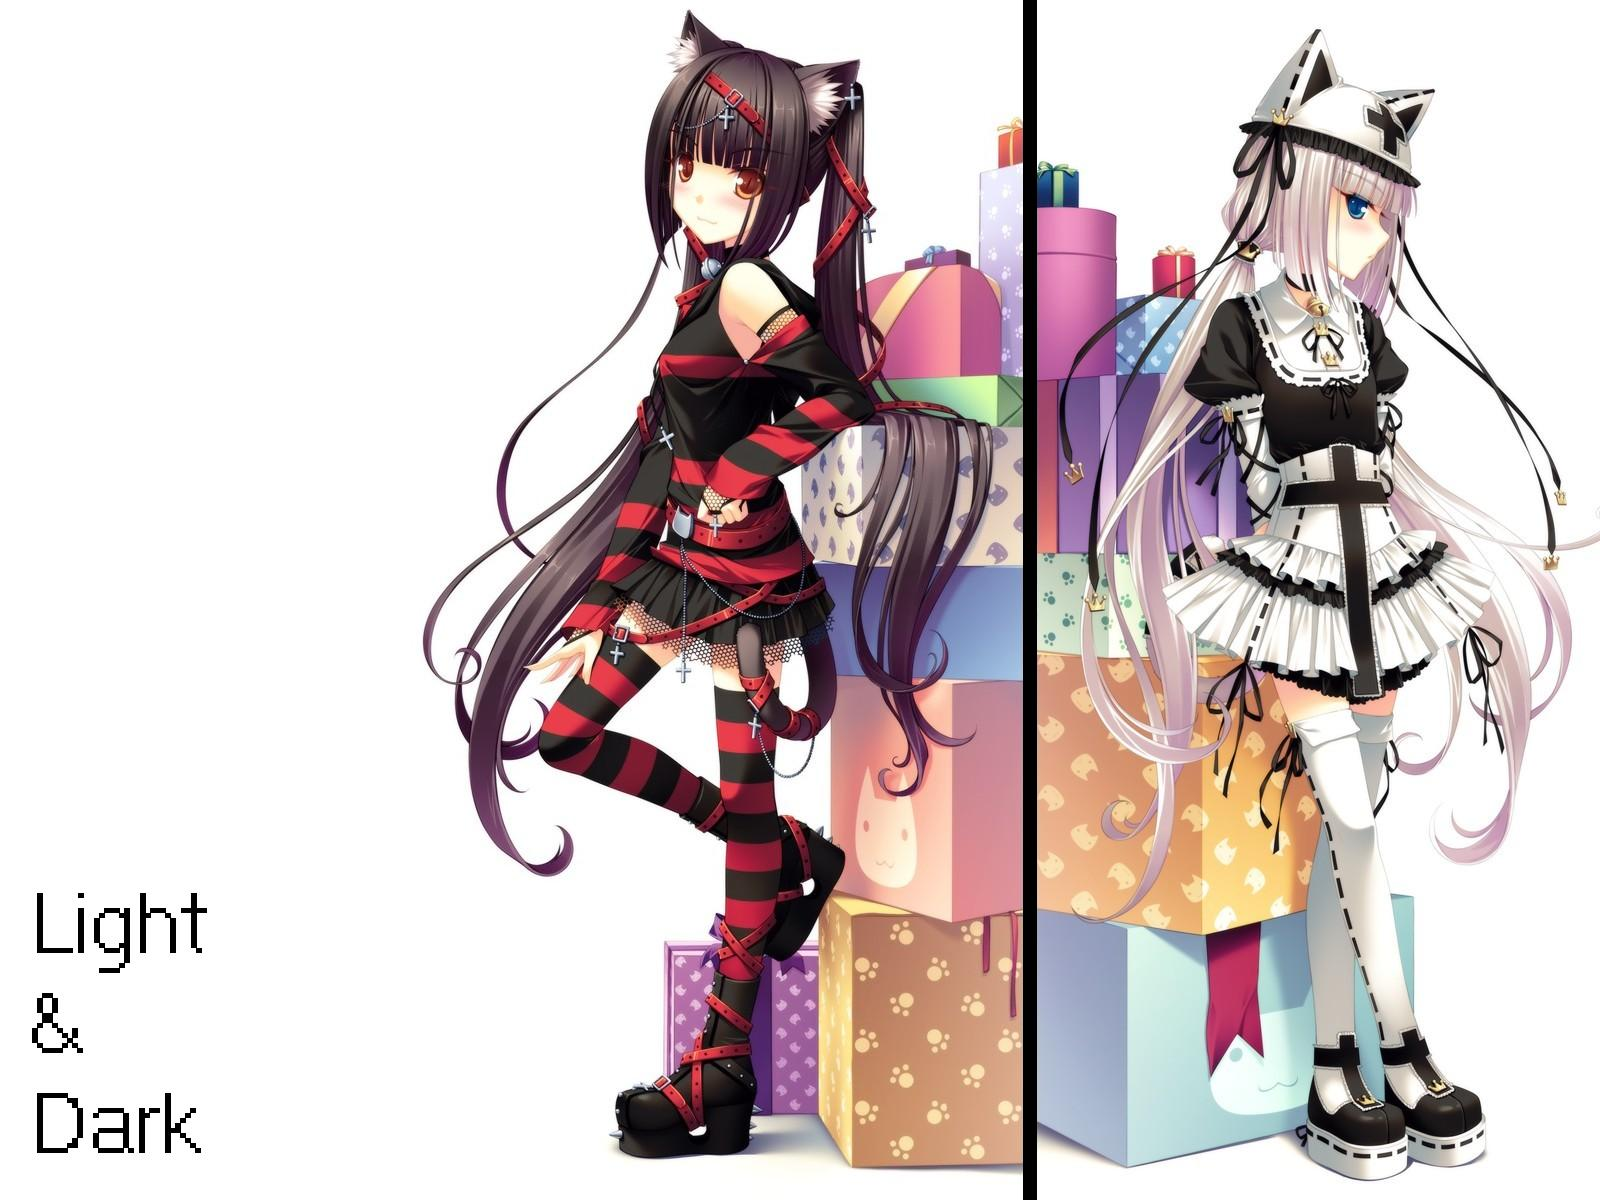 2girls animal_ears bell black_hair blue_eyes blush boots catgirl chocola_(sayori) choker cross dress food goth-loli hat jpeg_artifacts lolita_fashion long_hair nekopara neko_works orange_eyes original ribbons sayori skirt tail thighhighs twintails vanilla_(sayori) white white_hair zettai_ryouiki